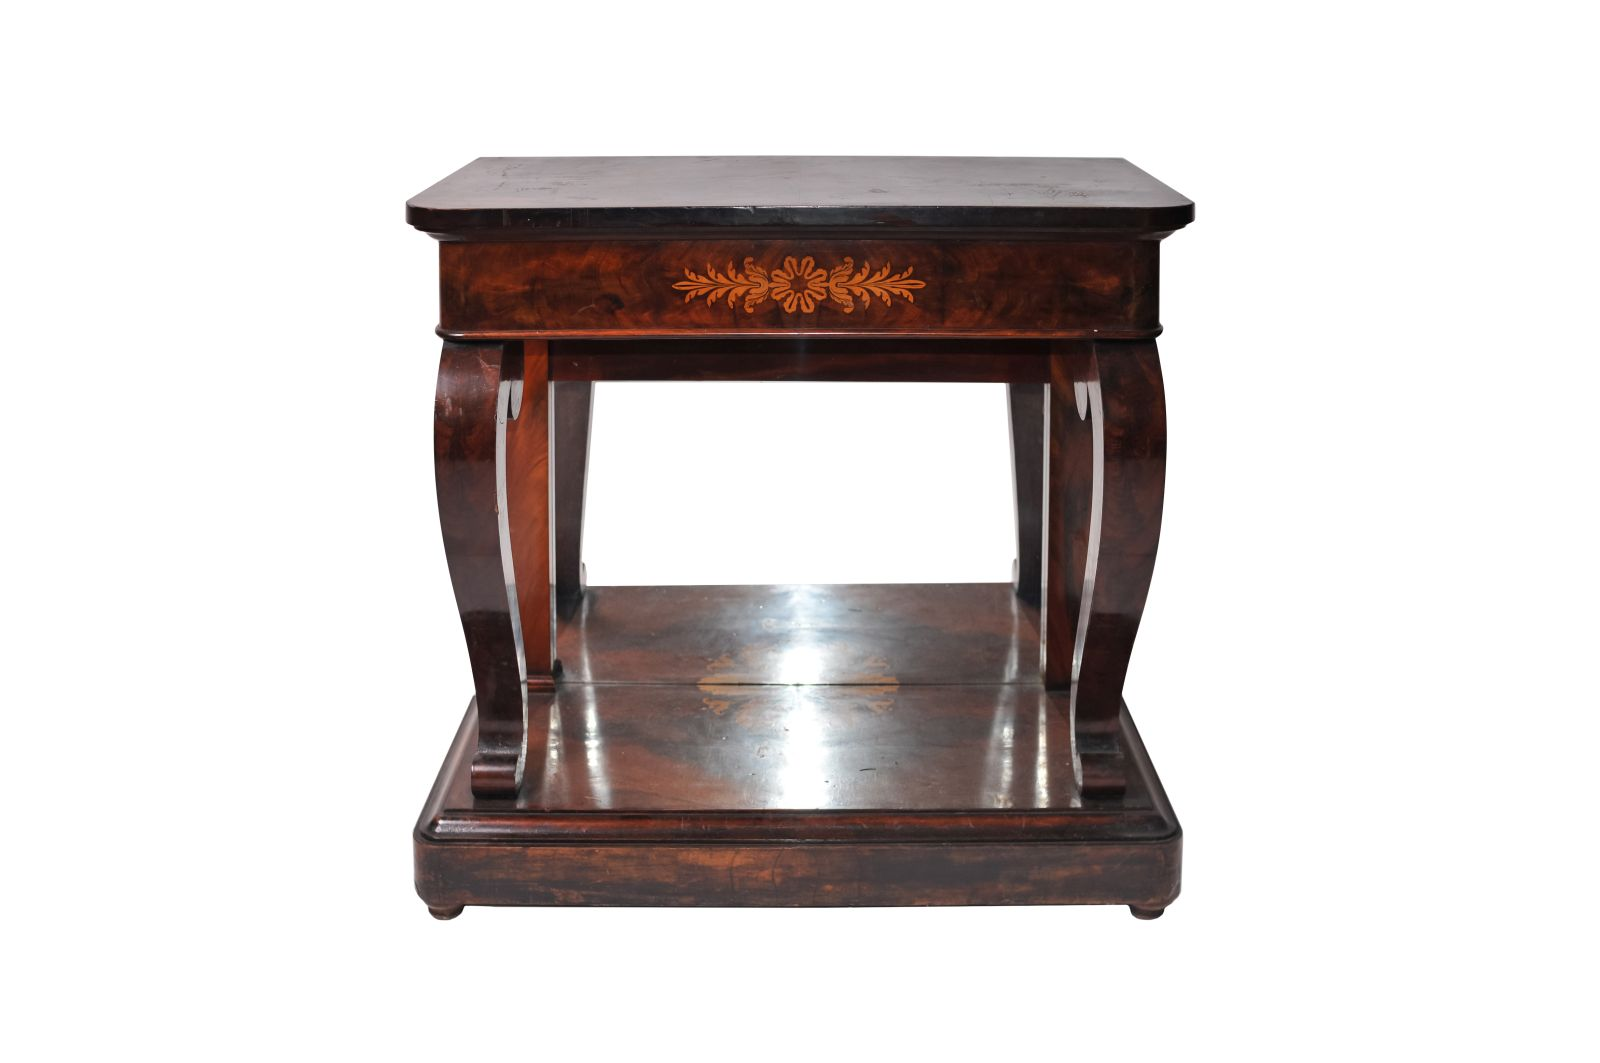 #113 Early Biedermeier console table | Frühbiedermeier Konsoltisch Image